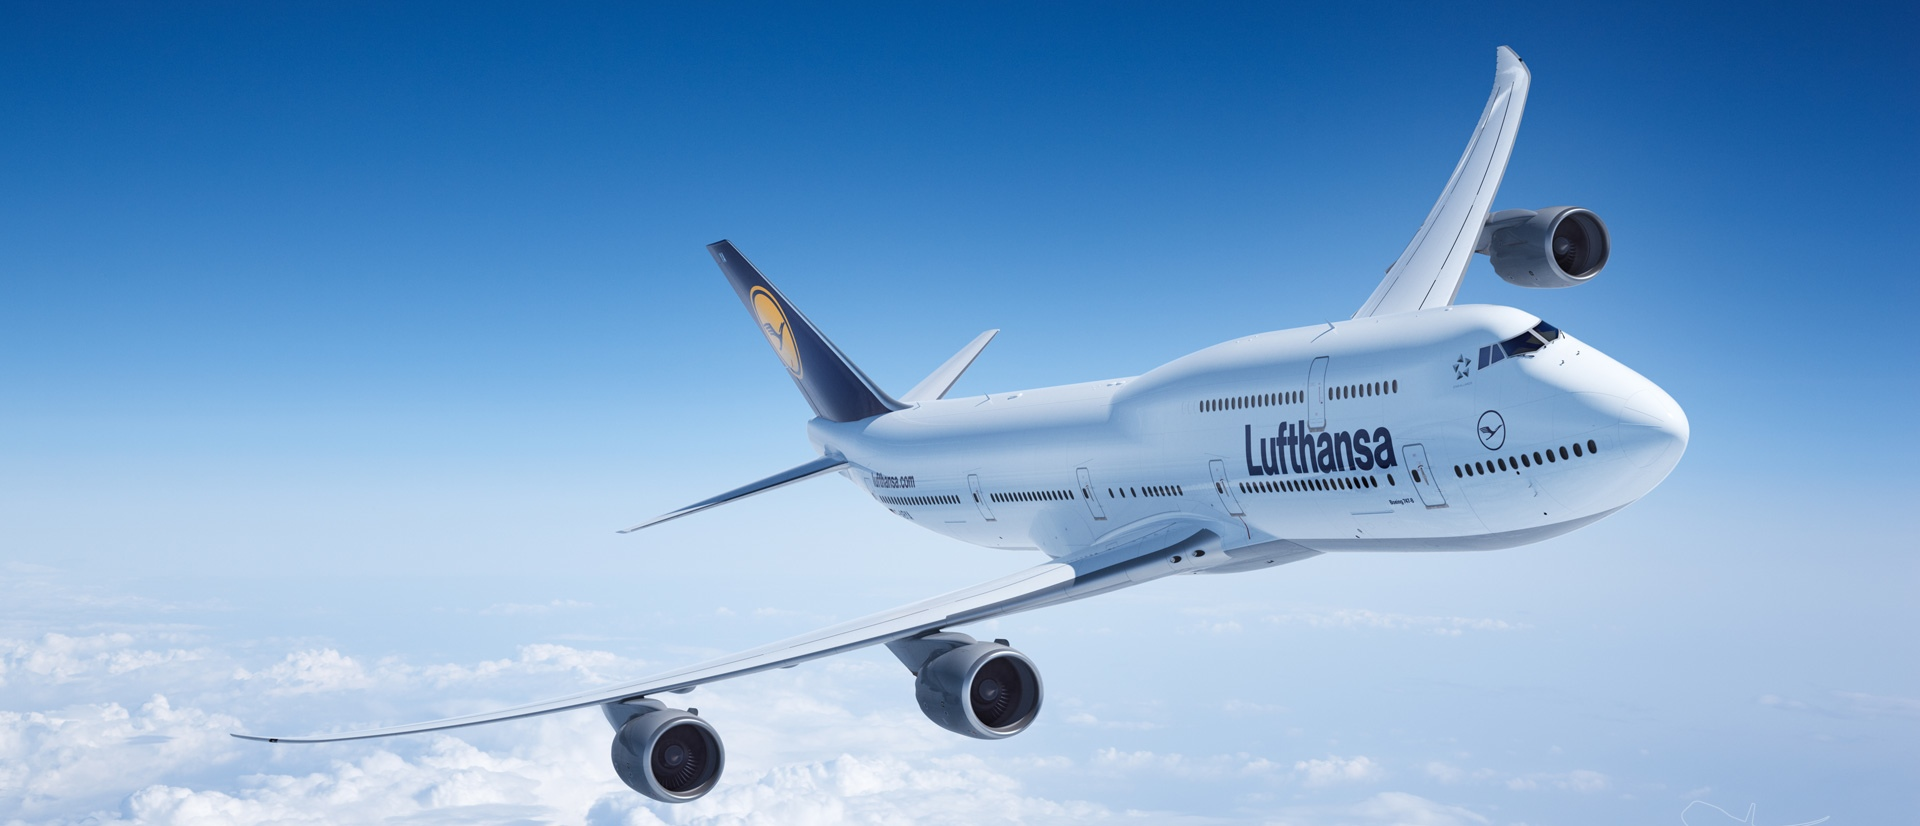 Lufthansa airplane in mid air